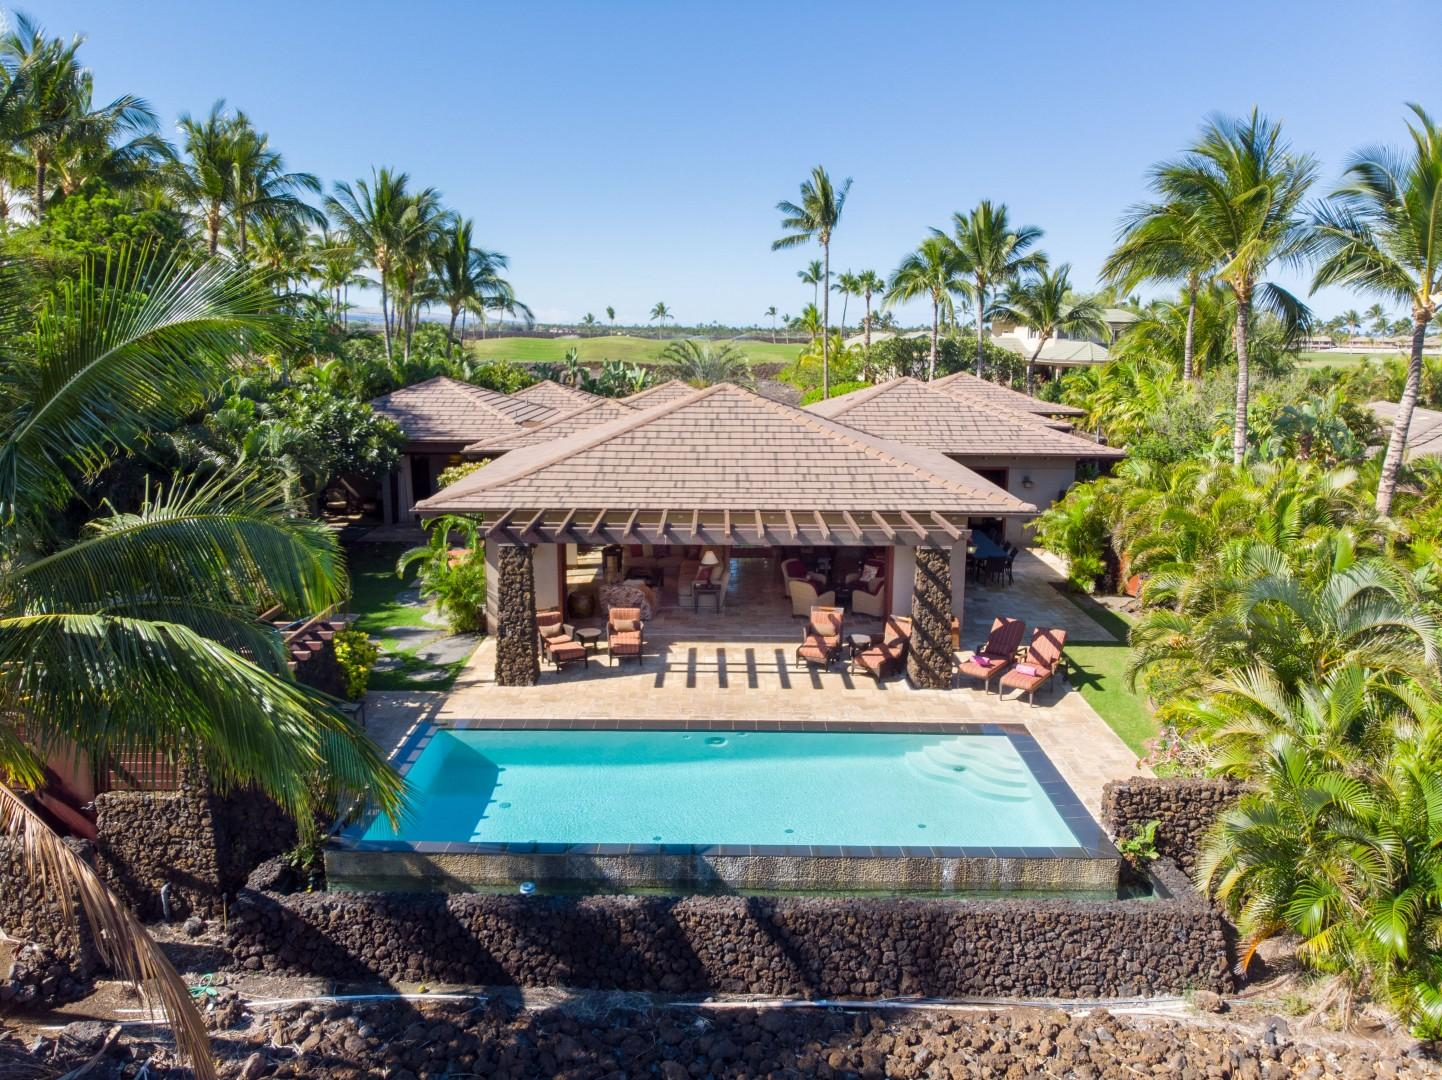 A Tropical Oasis Surrounded by Lush Foliage